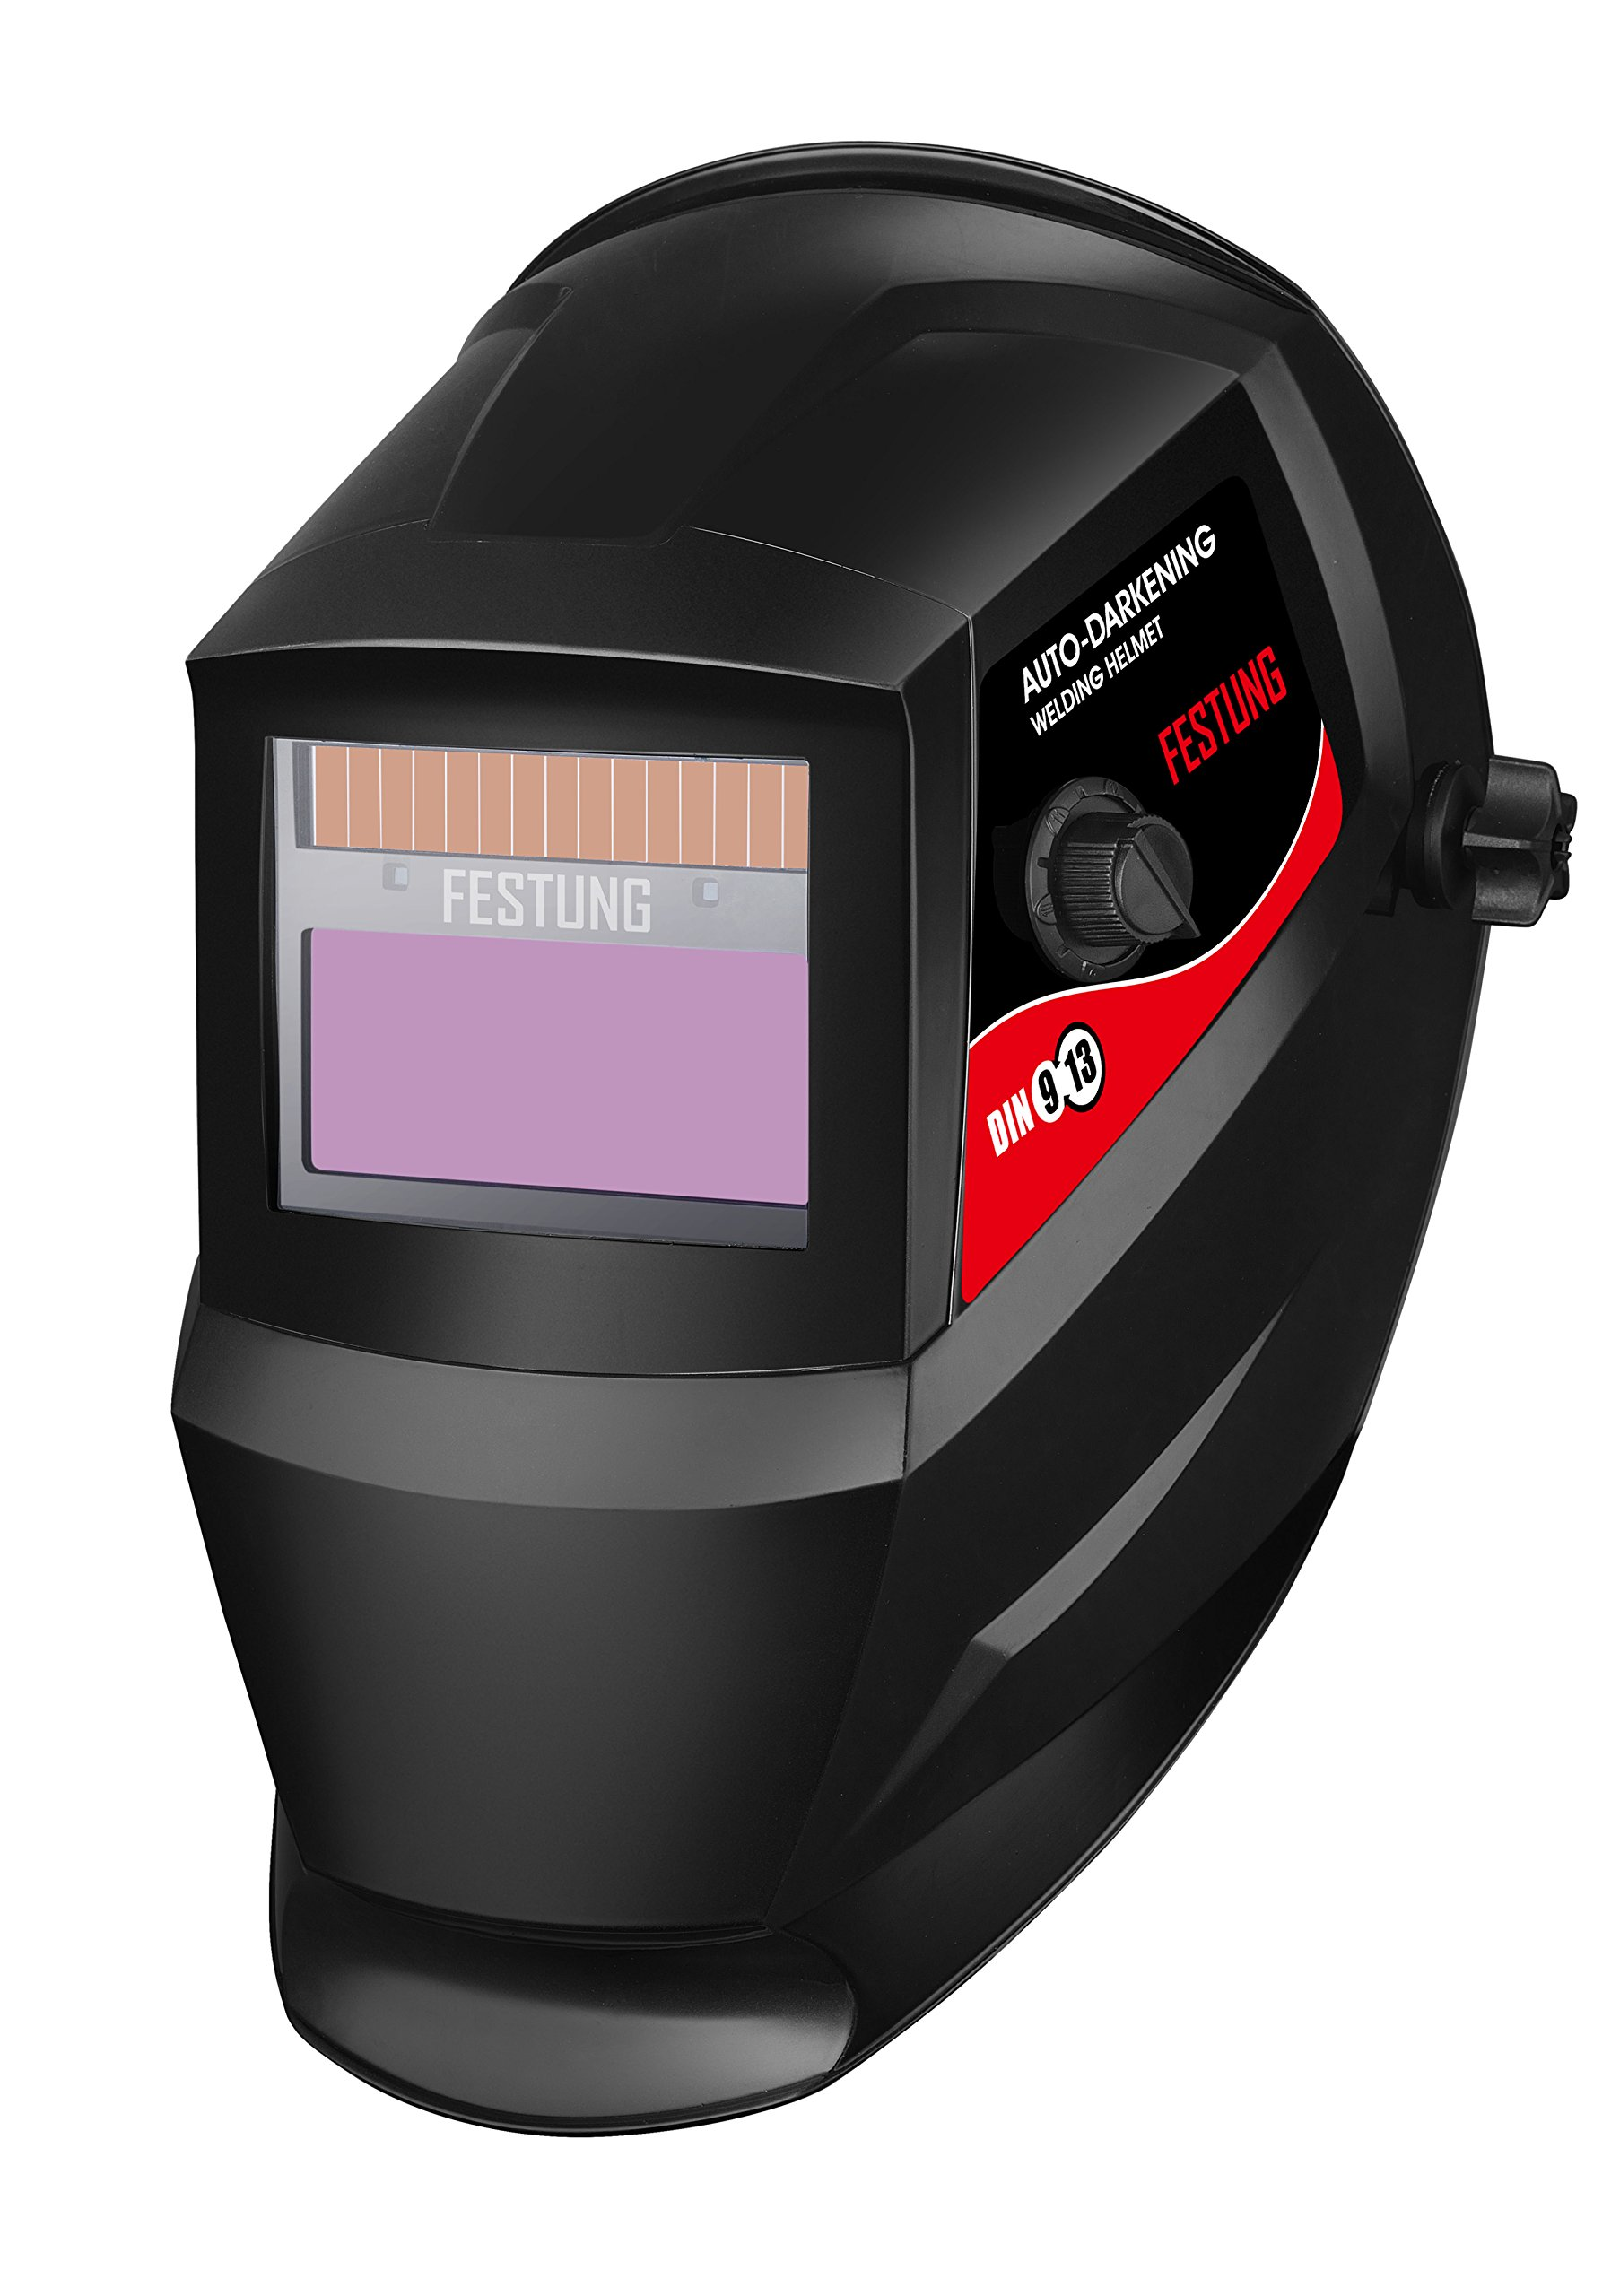 KOOLWOOM Solar Power Auto Darkening Welding Helmet LUXE designed with 2 Arc Sensors & Two Shade Ranges 5-8/9-13 with Grinding Feature Extra lens covers Good for TIG MIG MMA Plasma